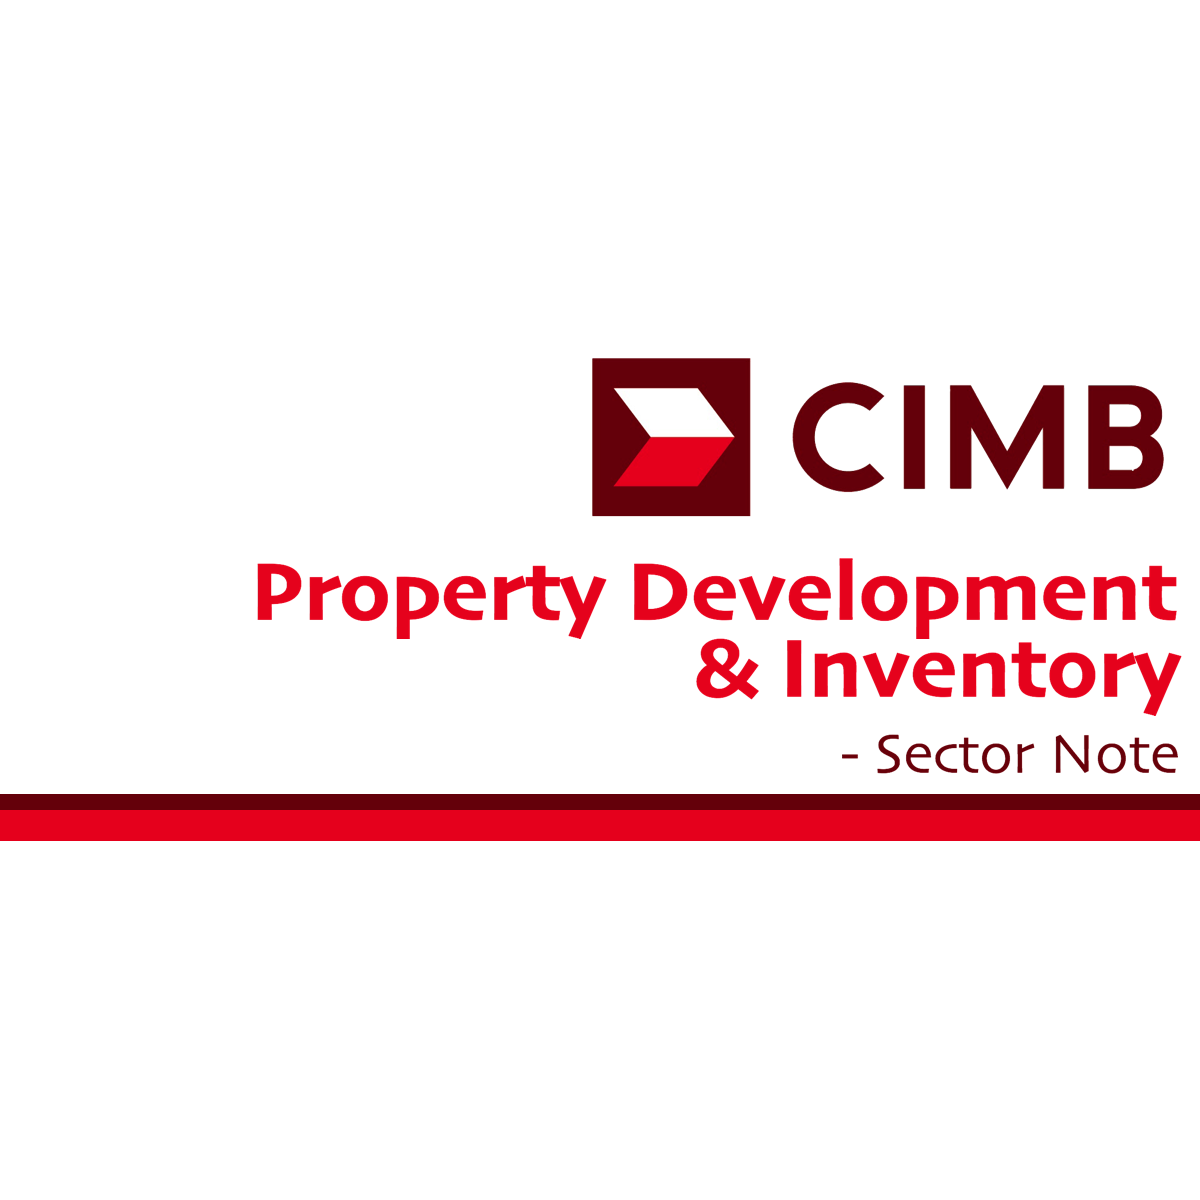 Property Devt & Invt - CIMB Research 2017-06-15: Taking A Small Breather